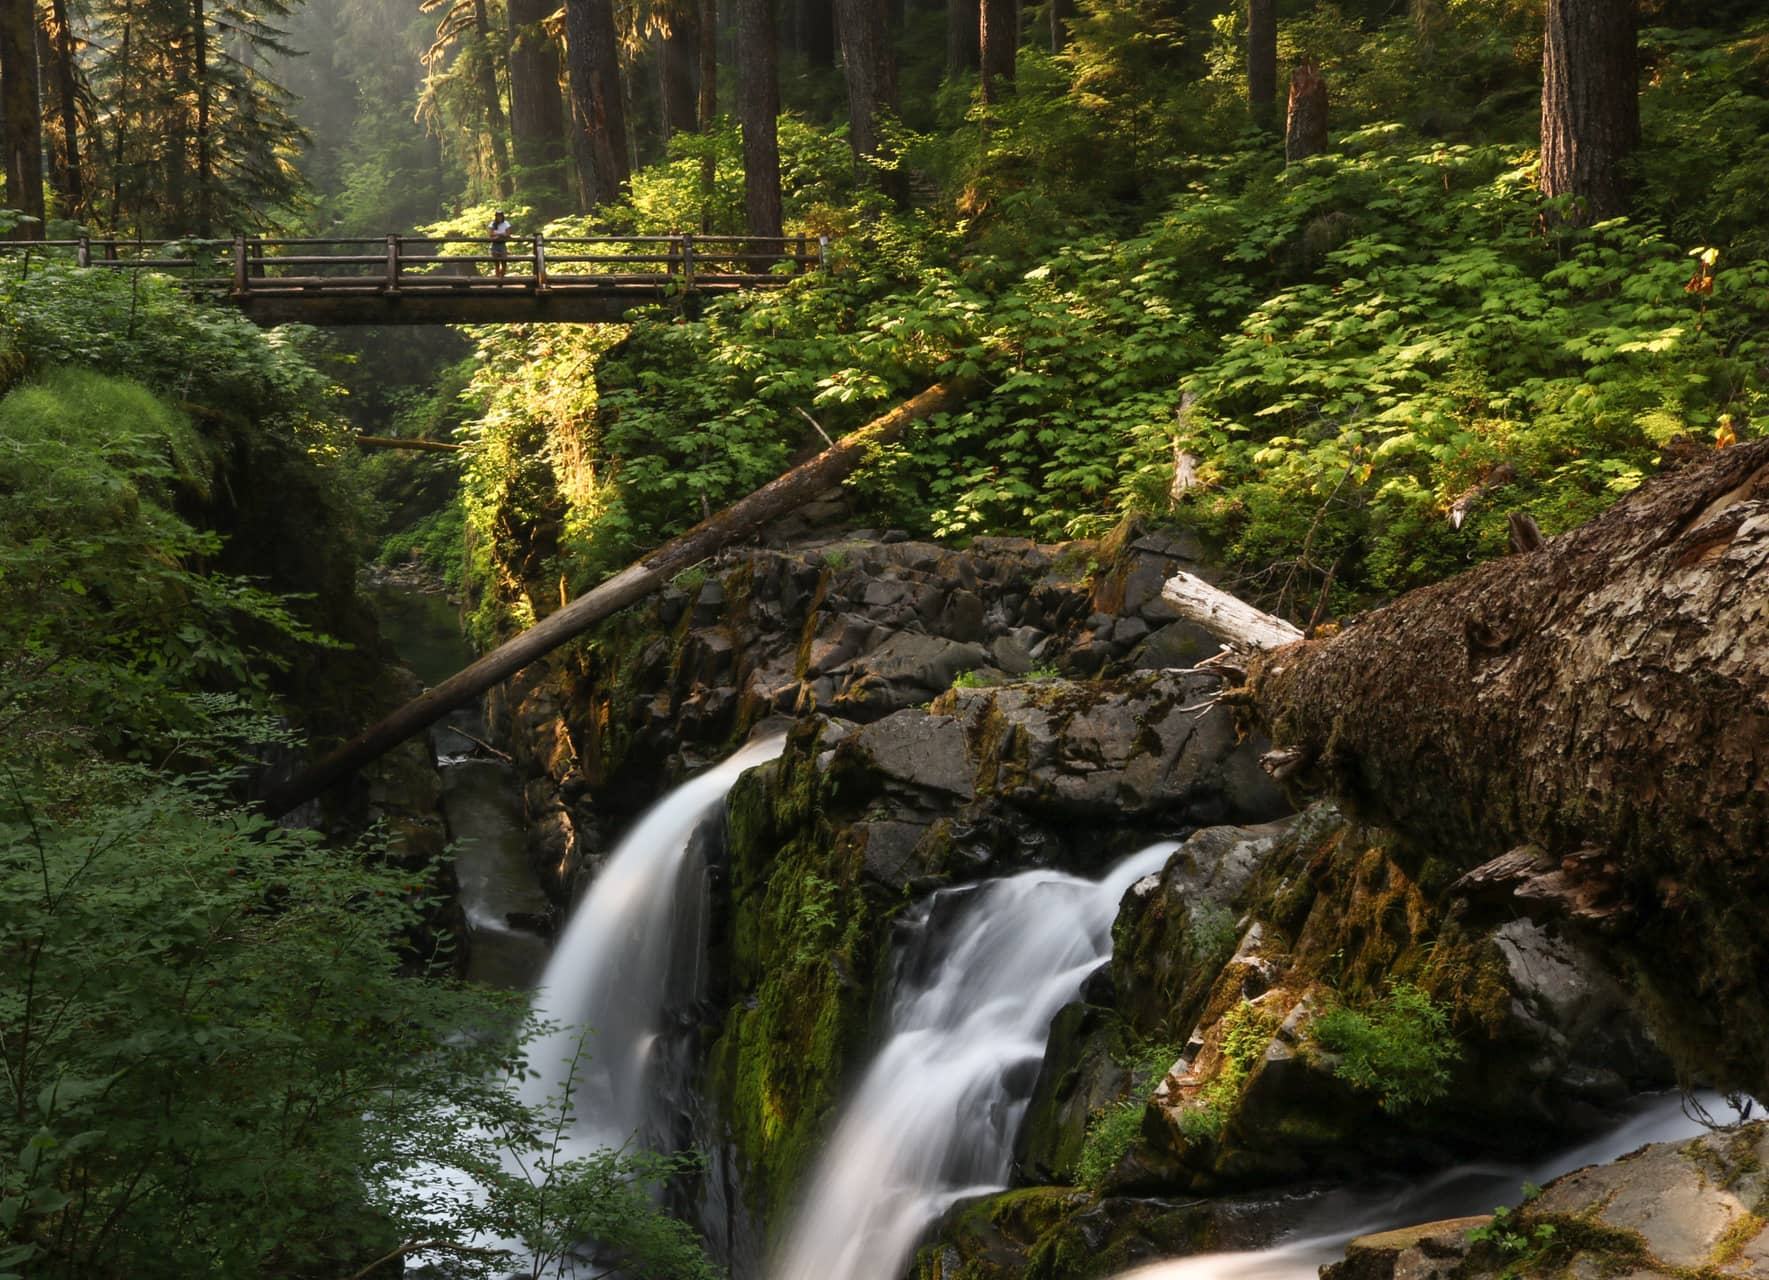 Sol Duc Falls in Olympic National Park, Washington, a beautiful UNESCO World Heritage Site